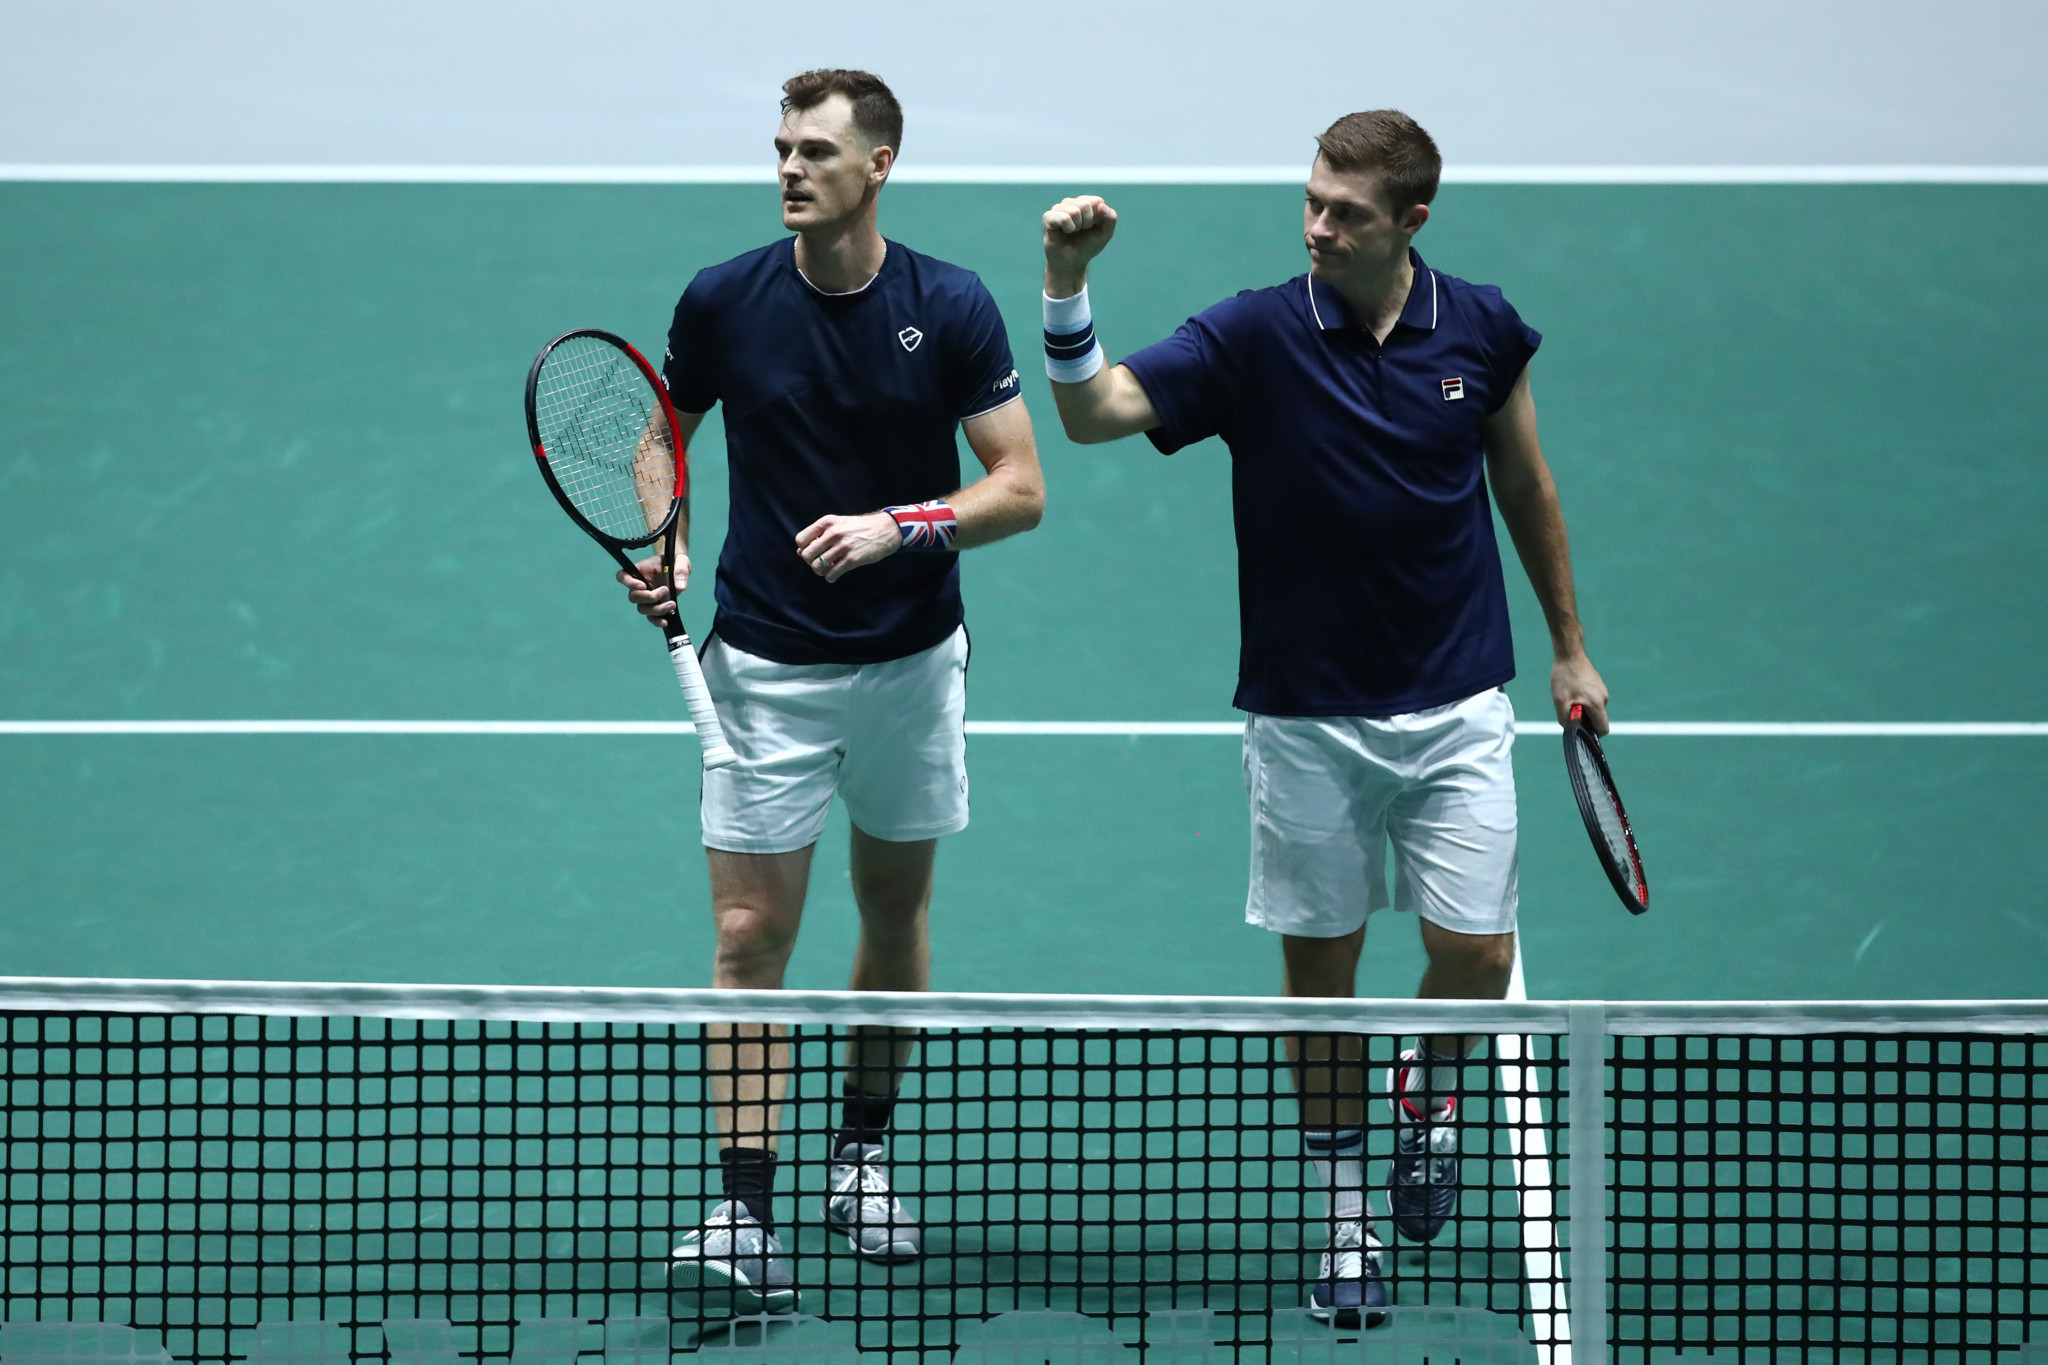 Great Britain's Jamie Murray and Neal Skupski won their pivotal doubles match to clinch victory over Kazakhstan ©Getty Images